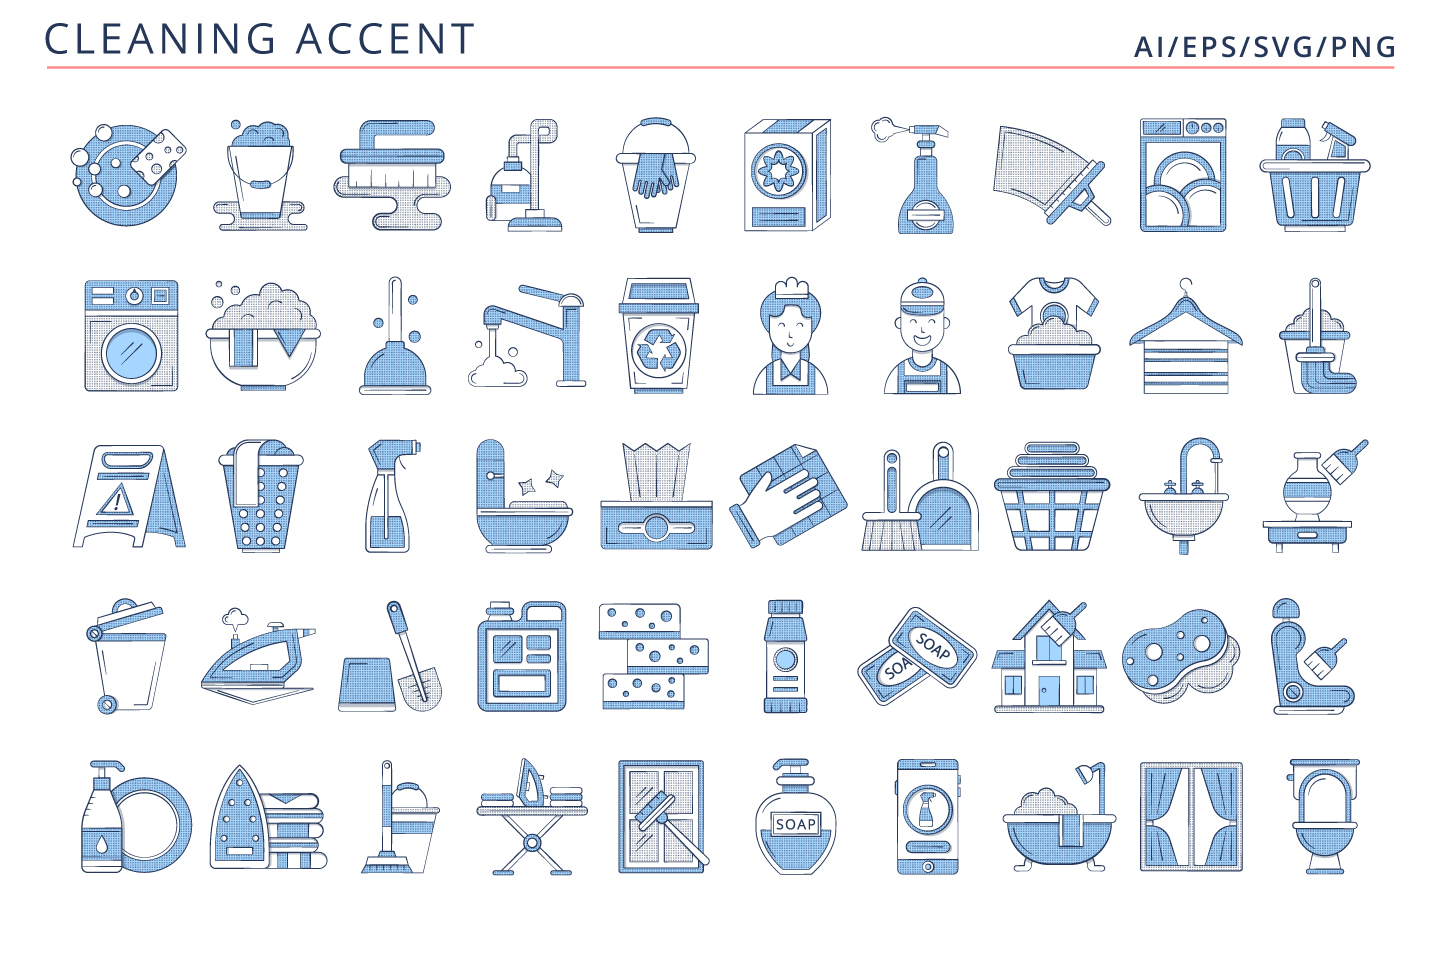 50 Cleaning Icons (AI, EPS, SVG, PNG files)